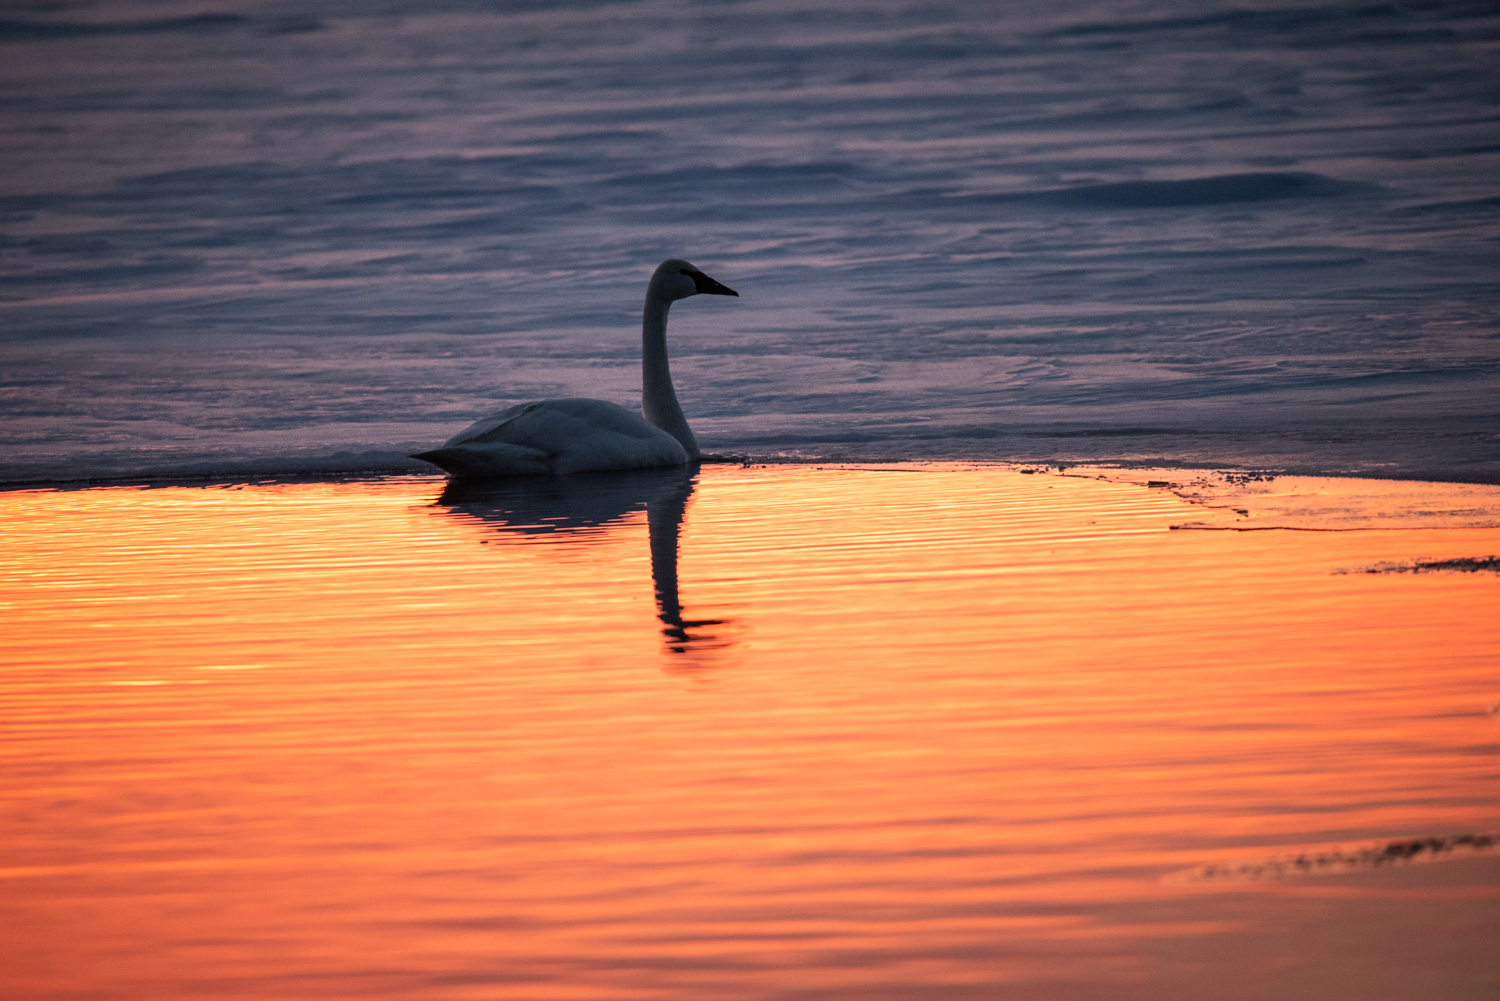 Image: This timid Trumpeter Swan wasshot using the DX crop built into my camera at an effective foc...